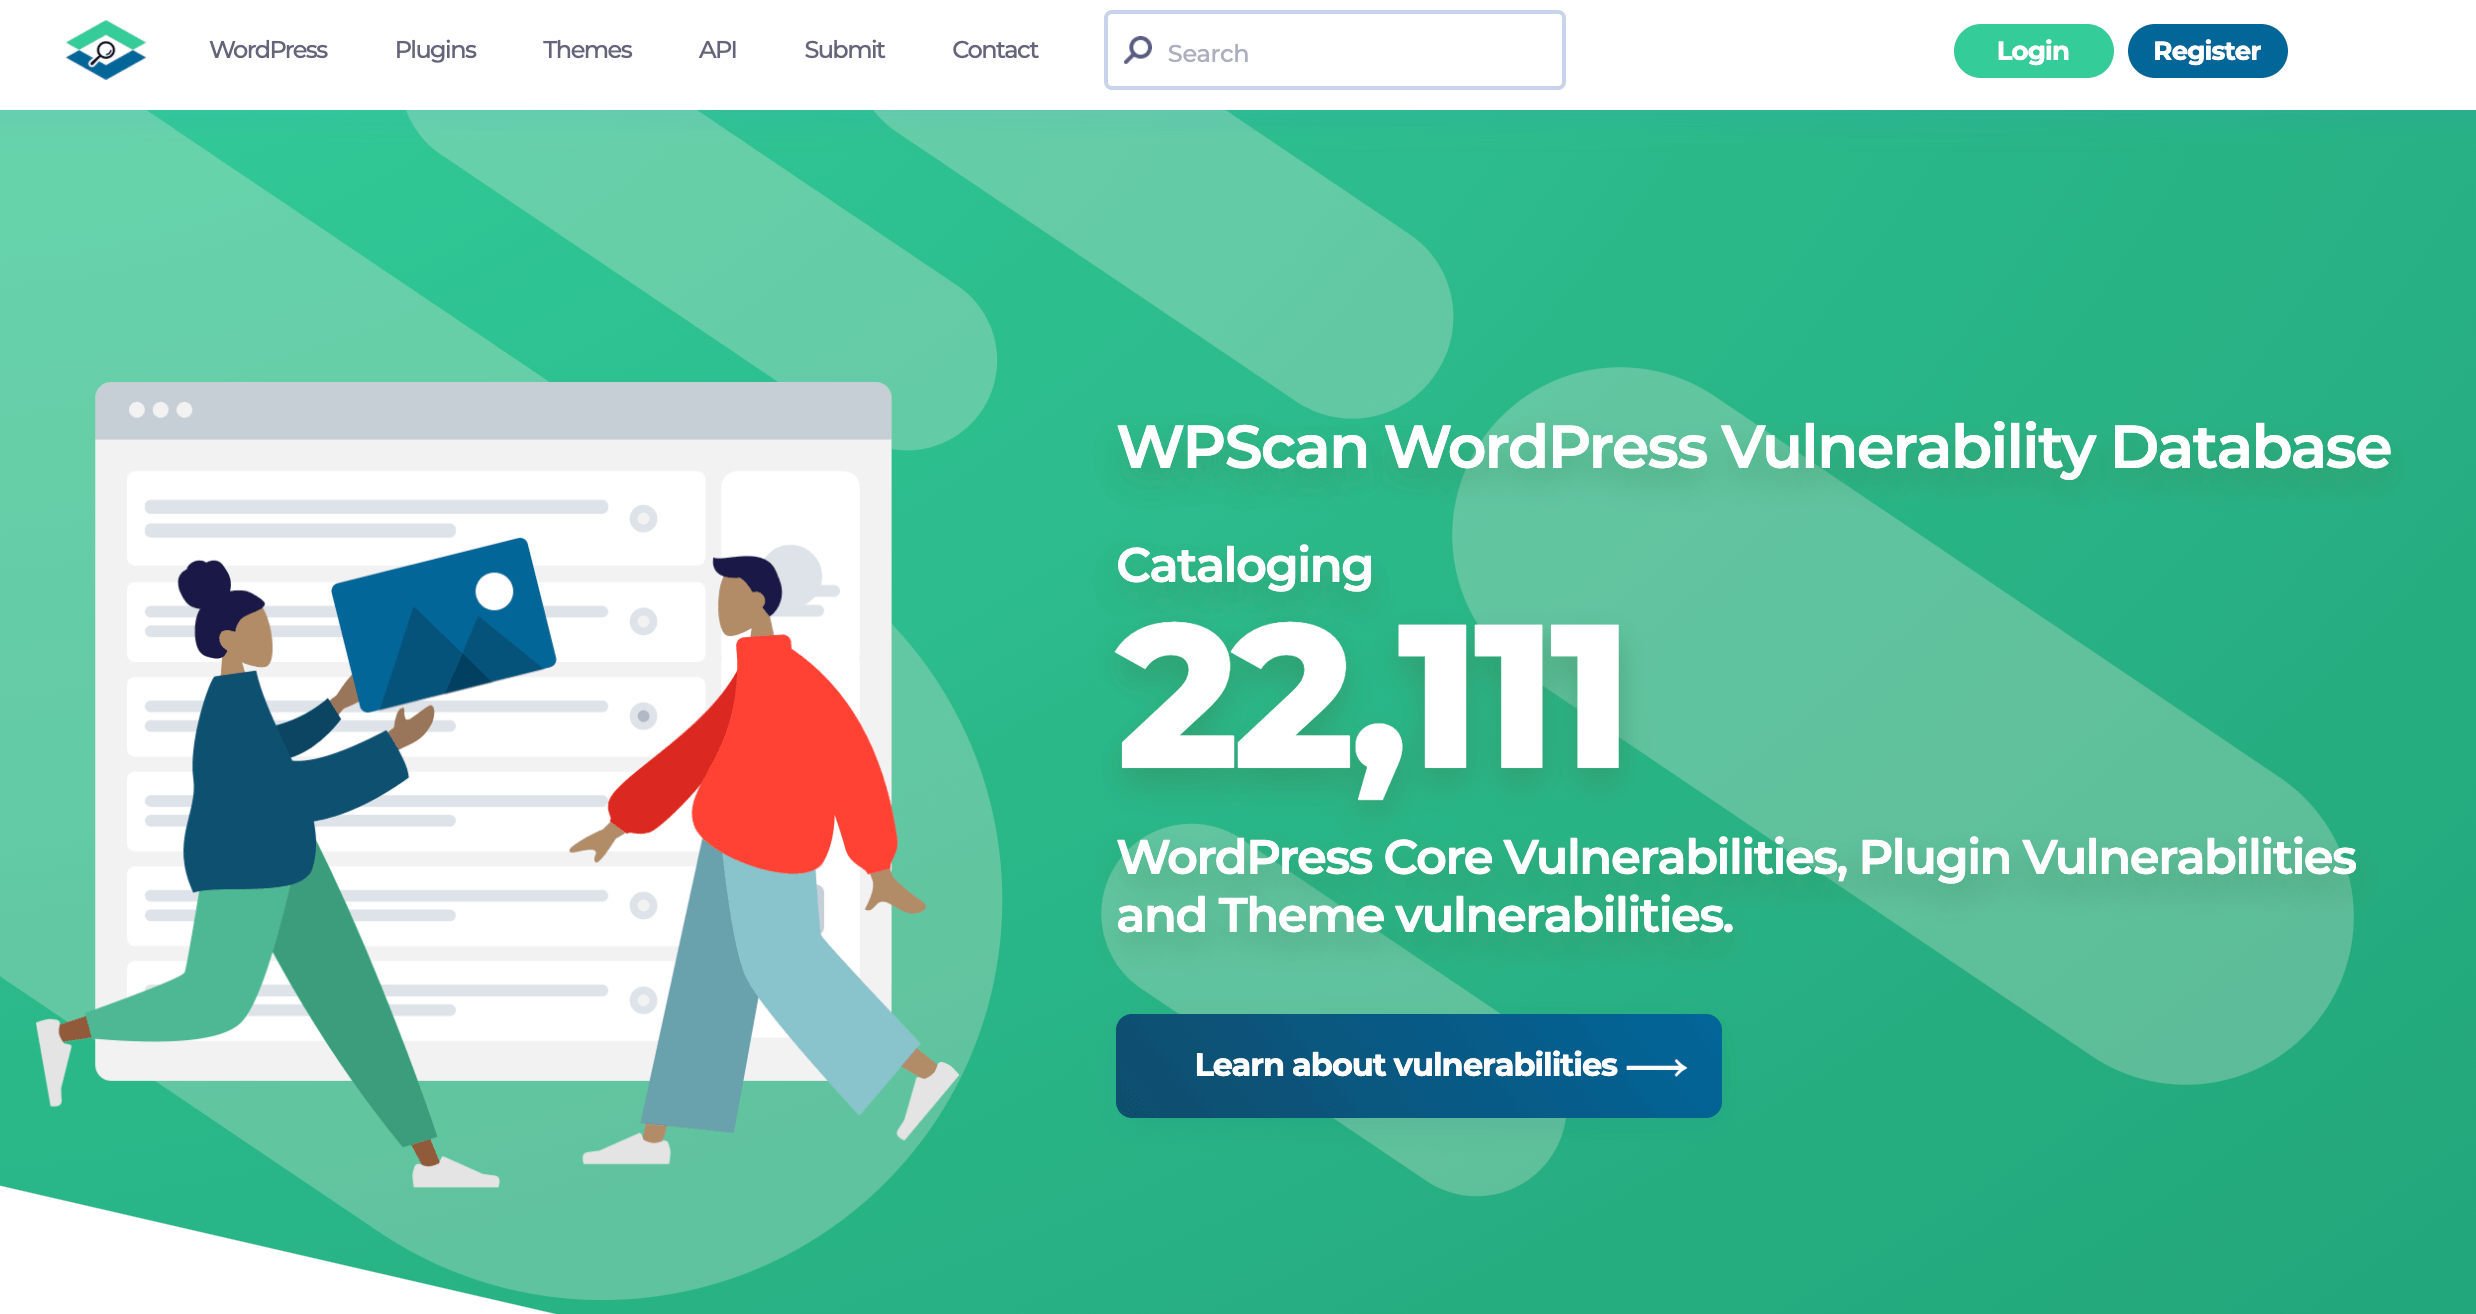 The WPScan vulnerability exploits database.